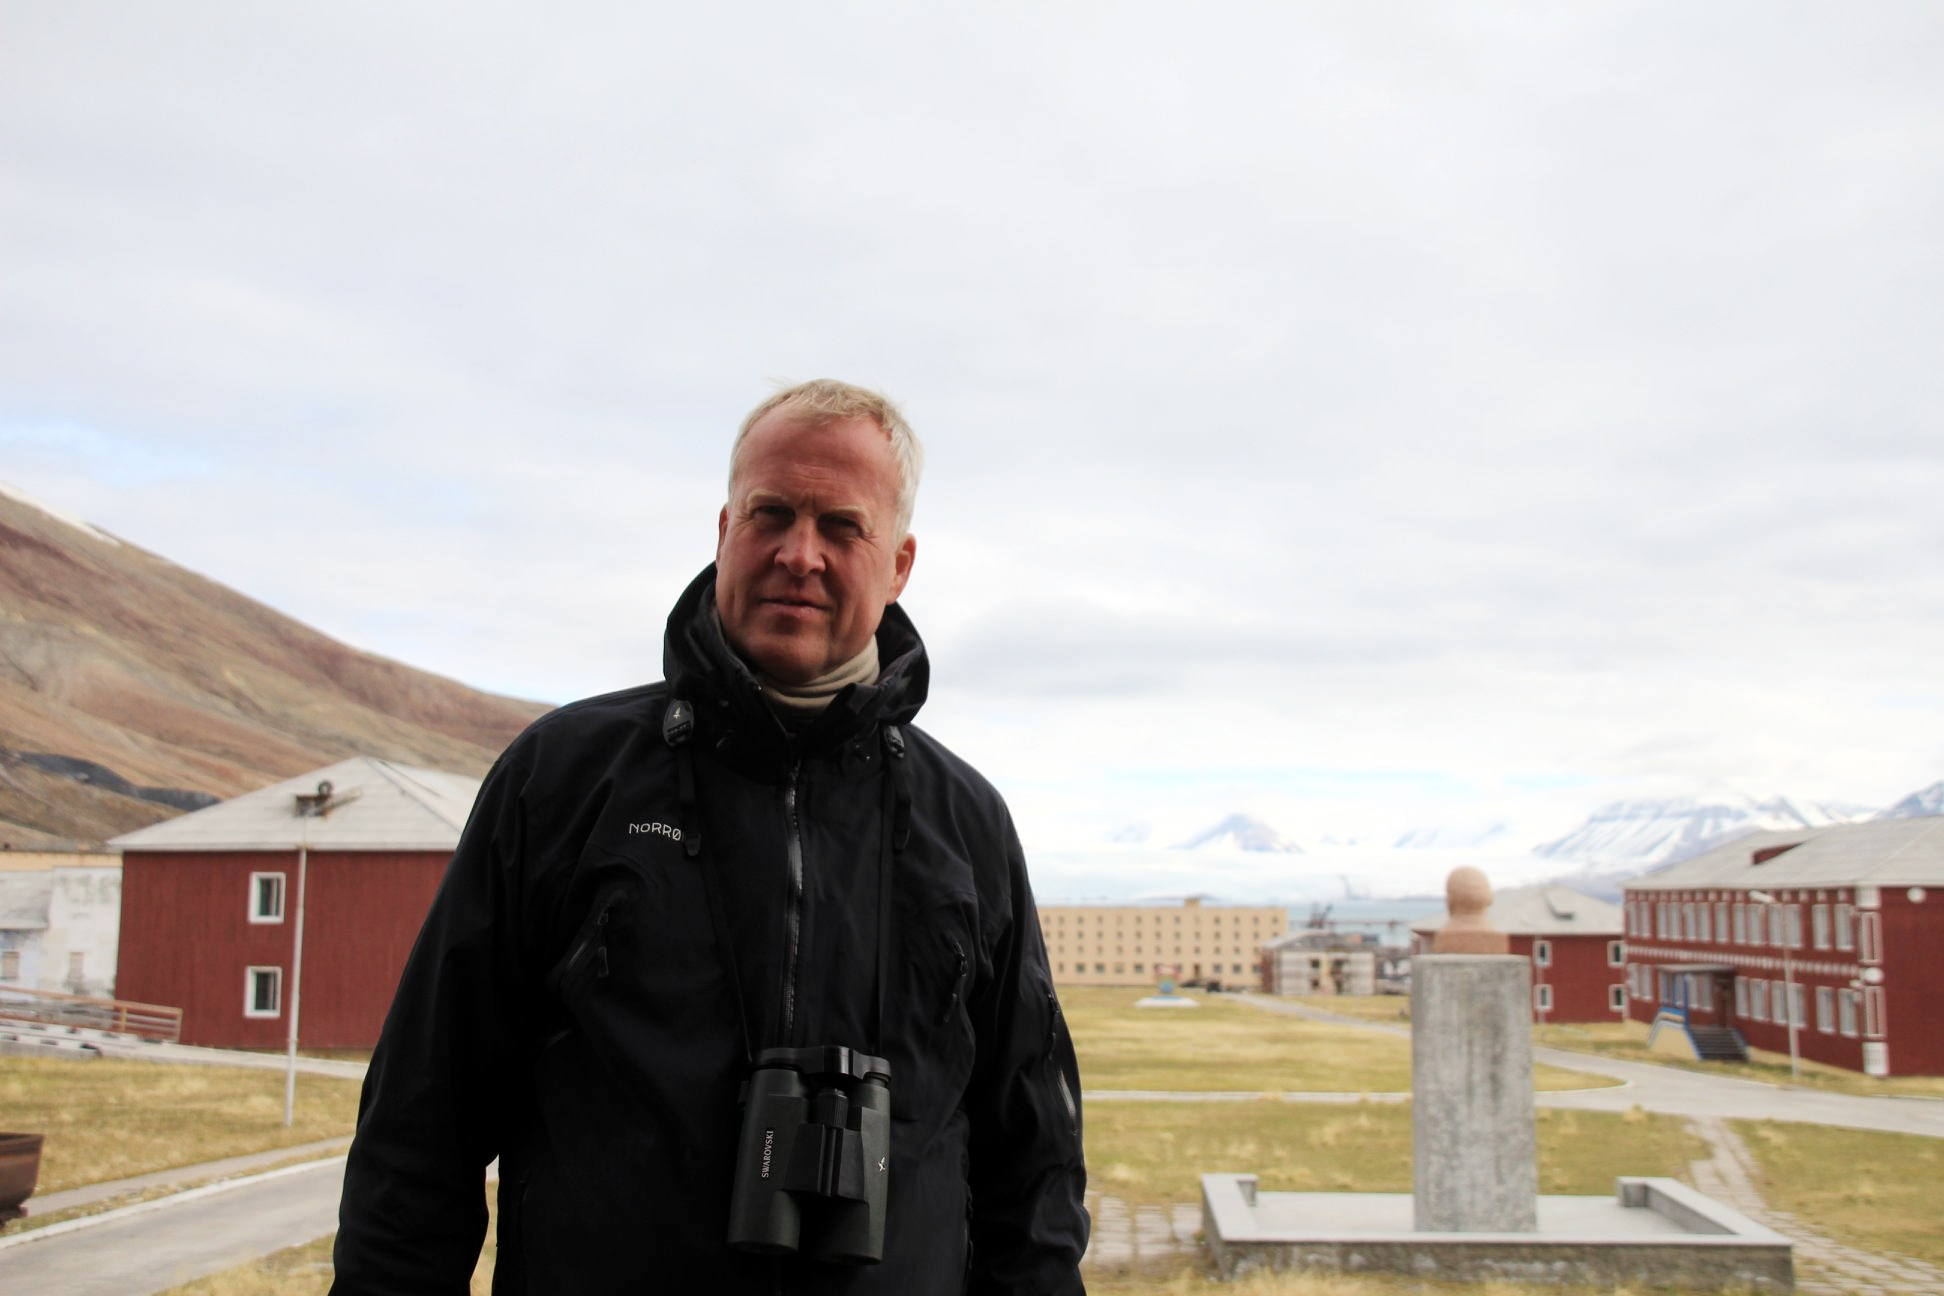 MEET THE NEW MASTER: Lars Fause, lead Troms/Finnmark prosecutor and former Svalbard lieutenant governor, to be new archipelago governor under new <em>Sysselmester</em> title as of July 1